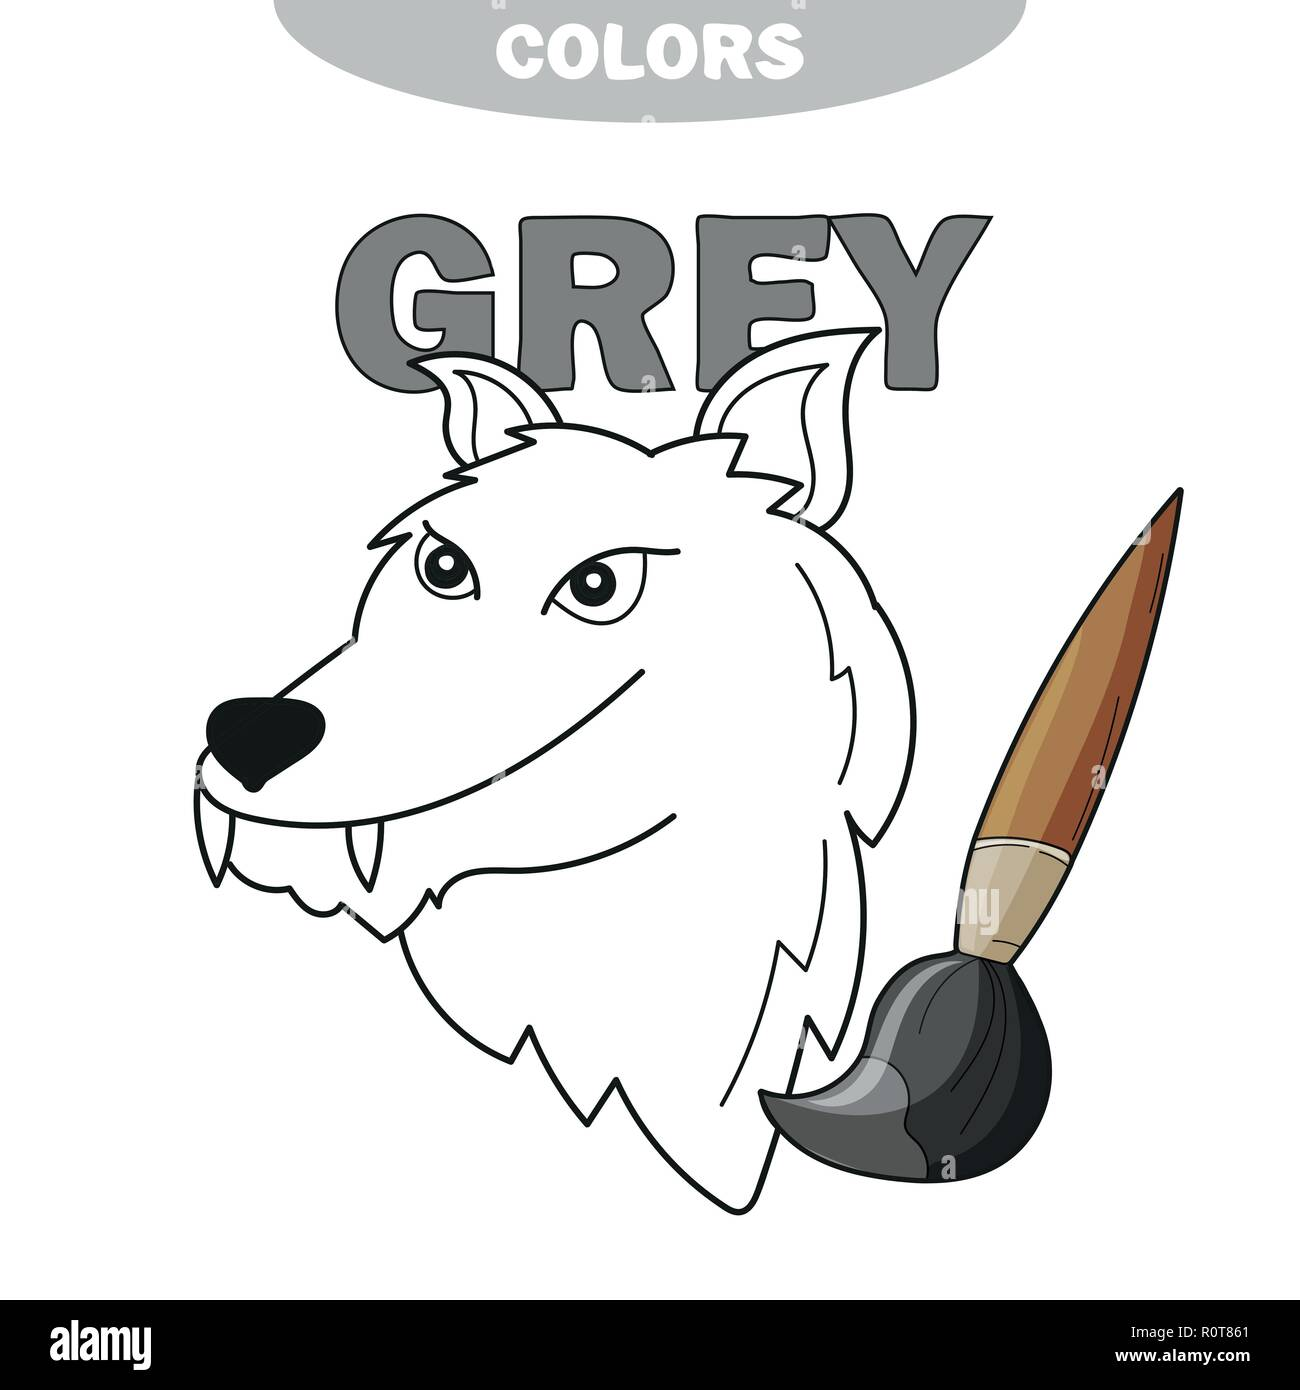 Learn The Color Gray Wolf Coloring Book Illustration Of Primary Colors Vector Illustration Stock Vector Image Art Alamy